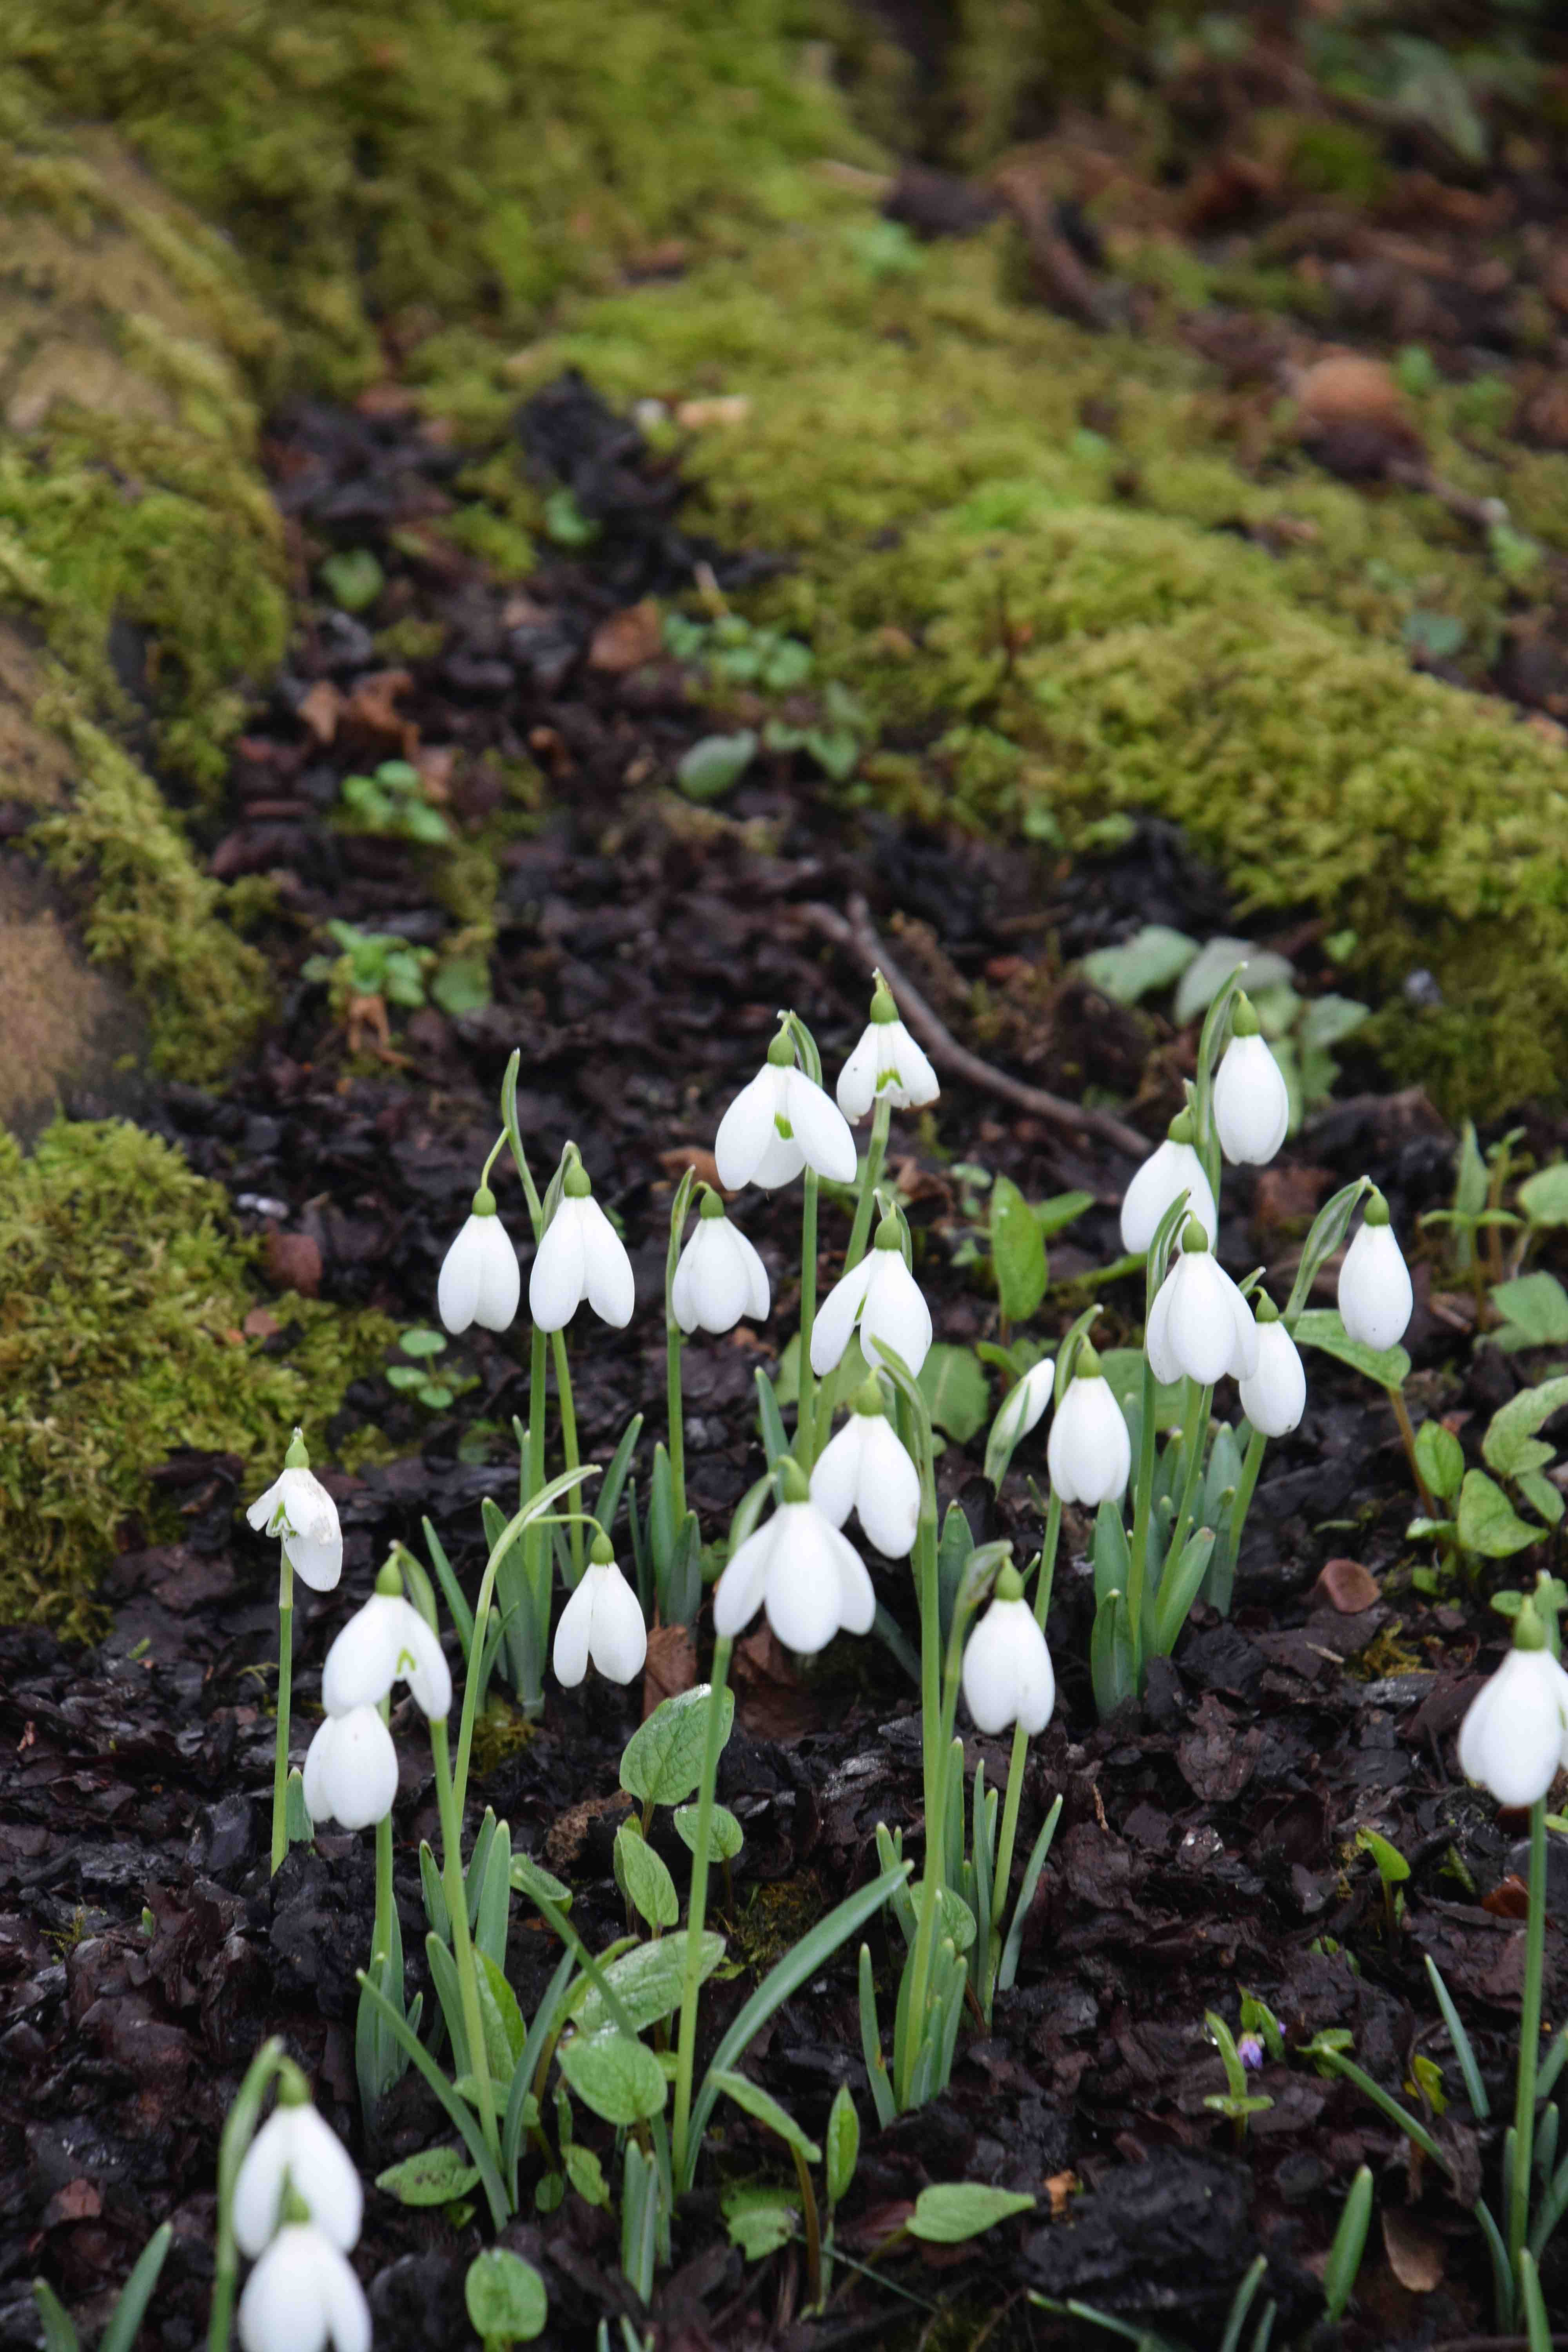 Even More Snowdrops From Altamont Bollen Kerst